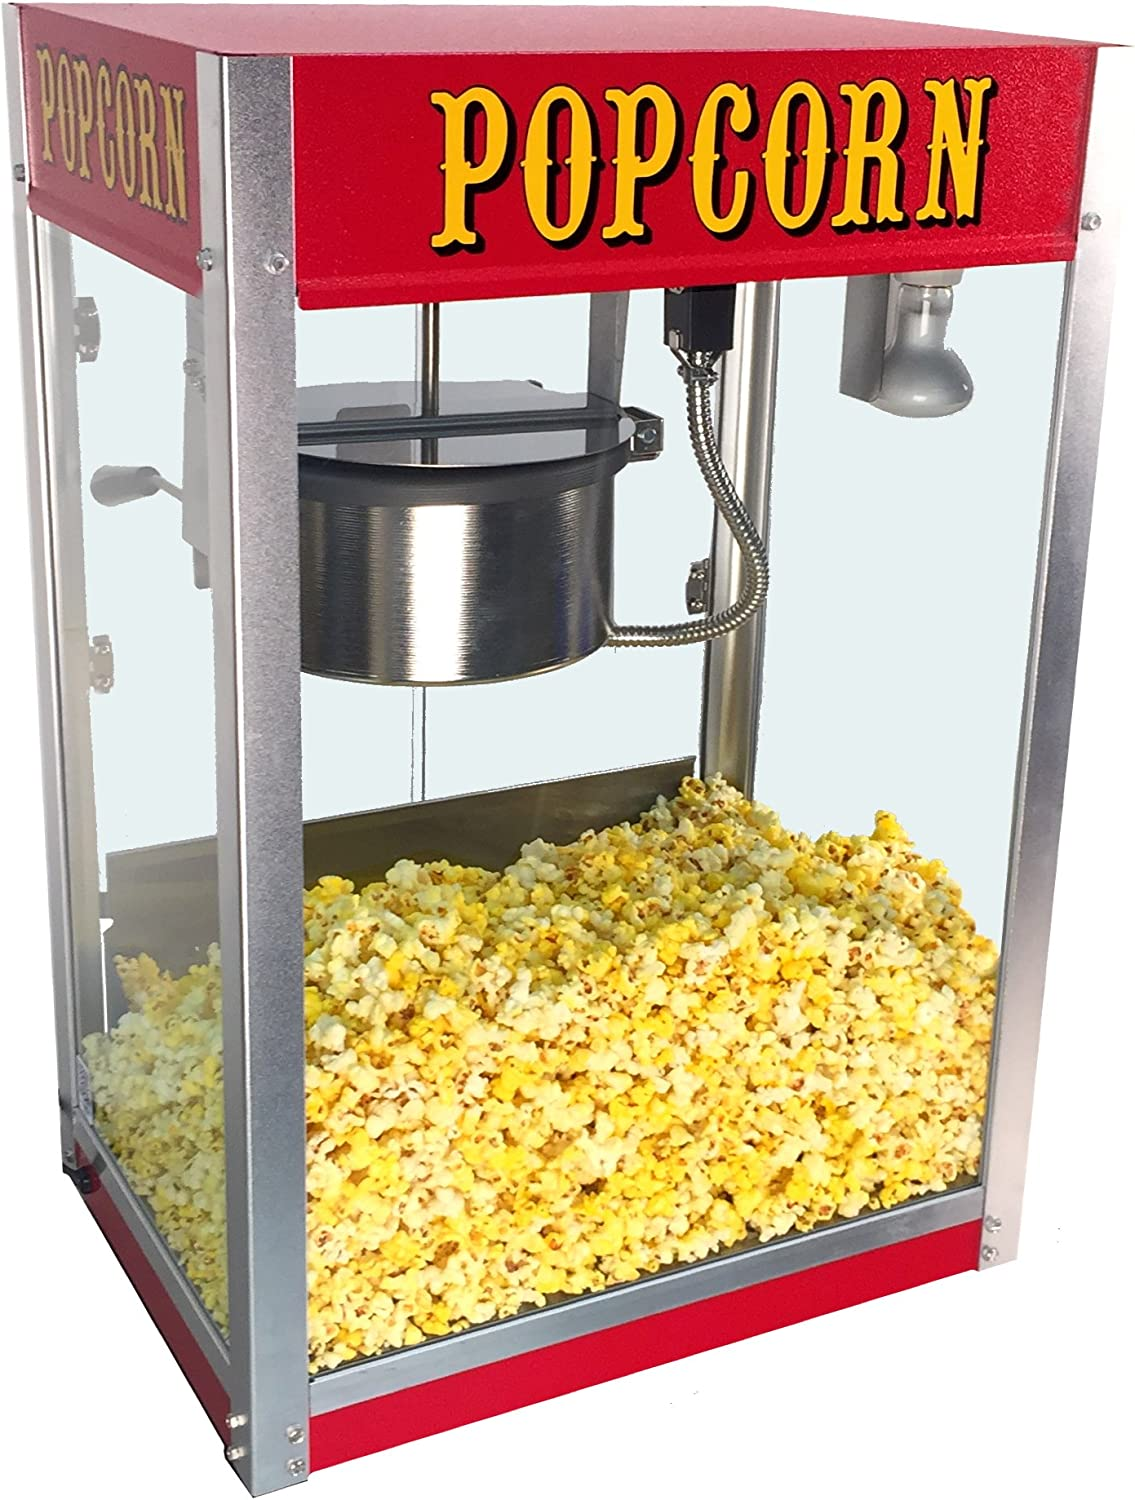 Amazon Com Paragon Theater Pop 8 Ounce Popcorn Machine For Professional Concessionaires Requiring Commercial Quality High Output Popcorn Equipment Sports Outdoors